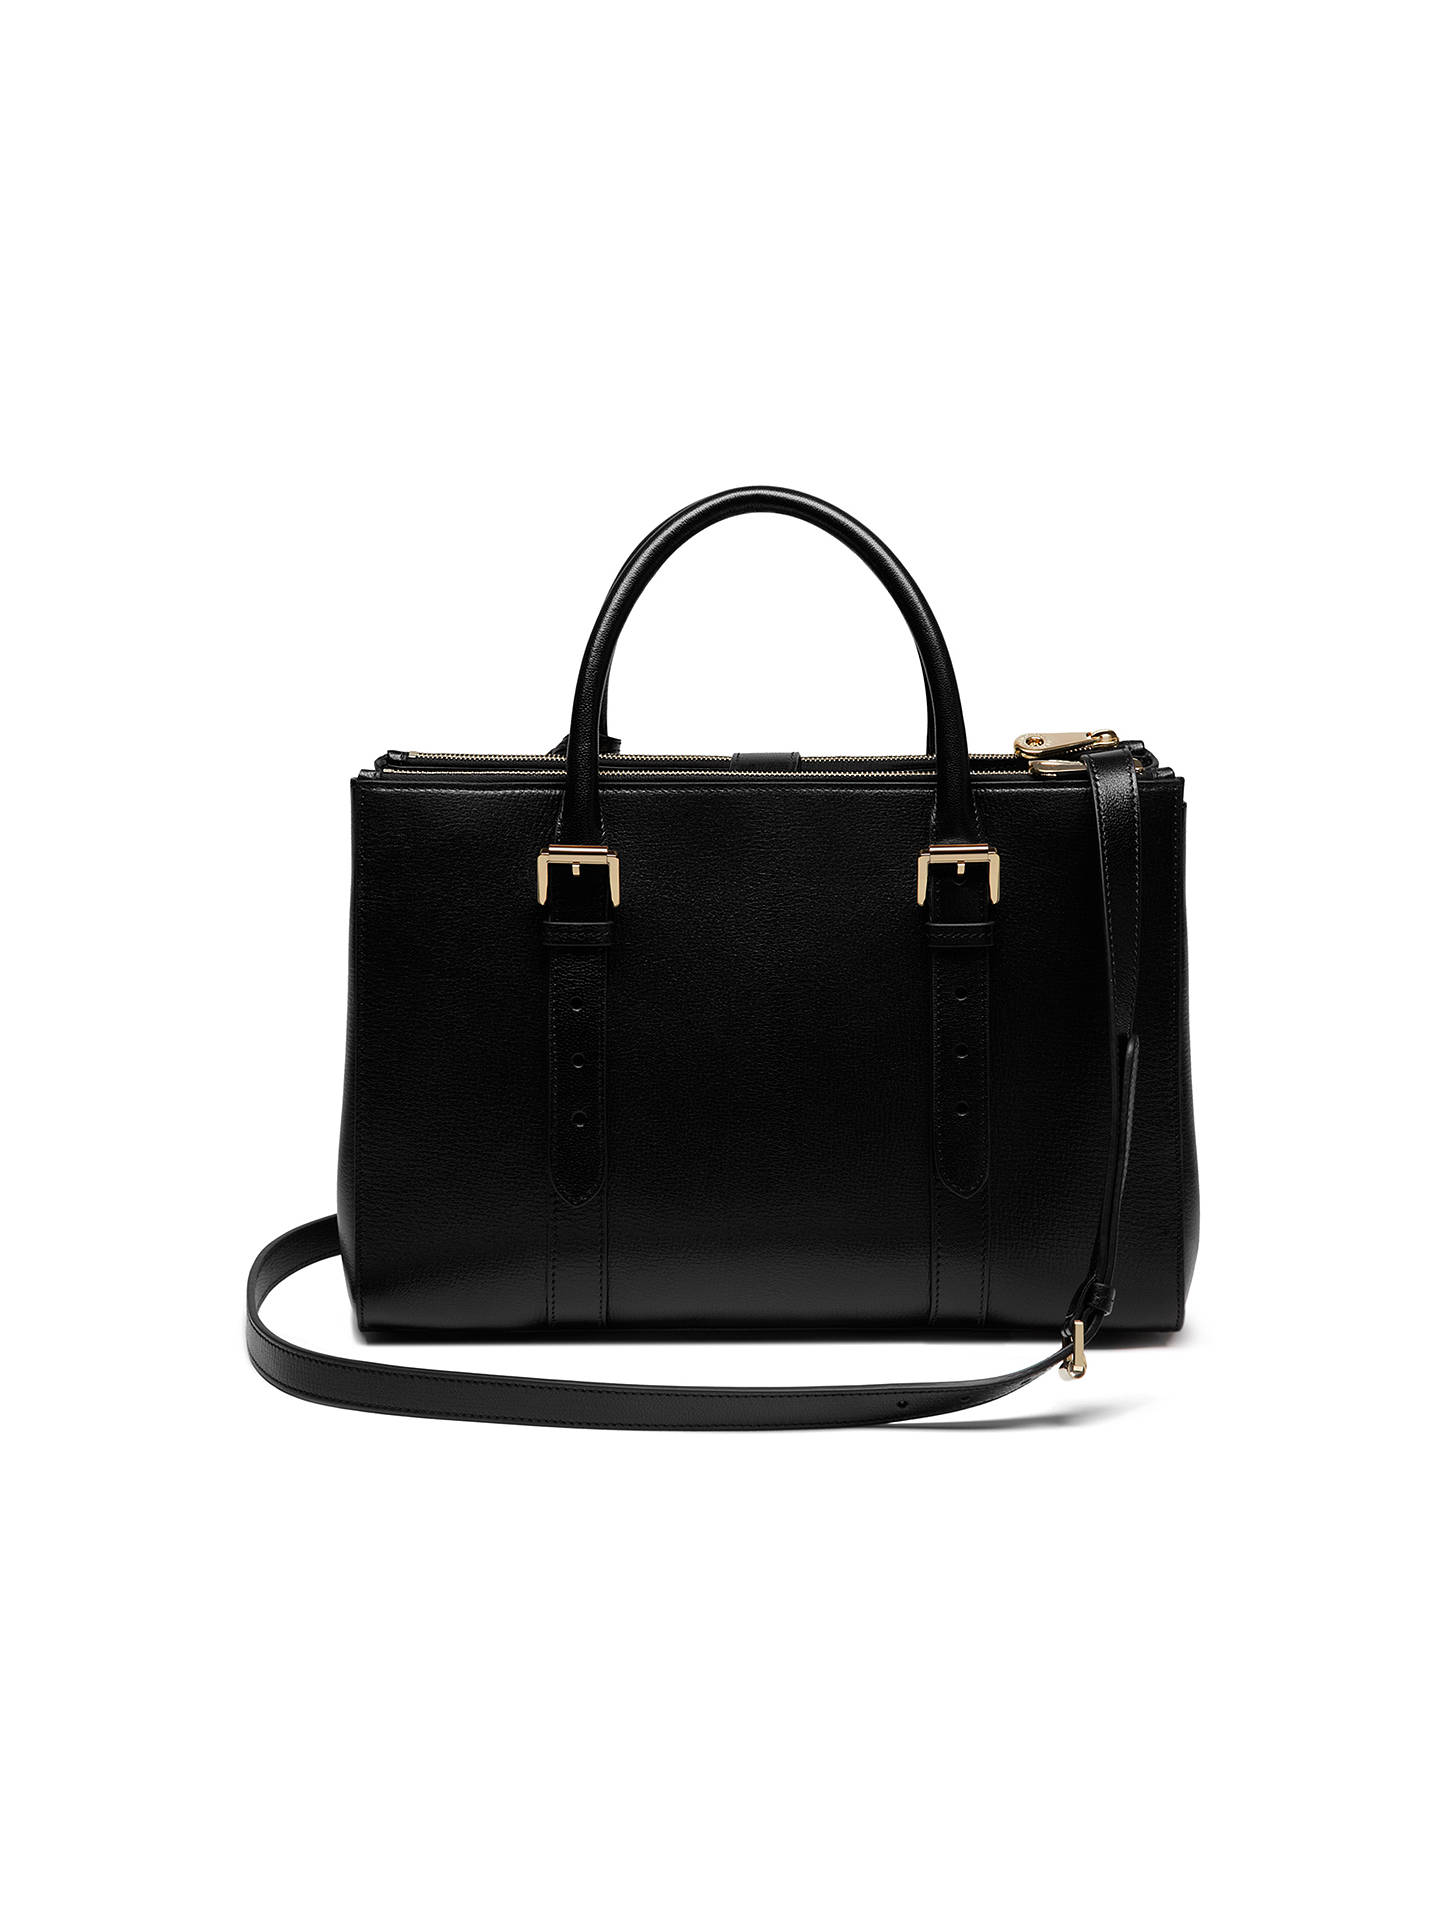 f21aa14390 ... Buy Mulberry Bayswater Leather Double Zip Tote Bag, Black Online at  johnlewis.com